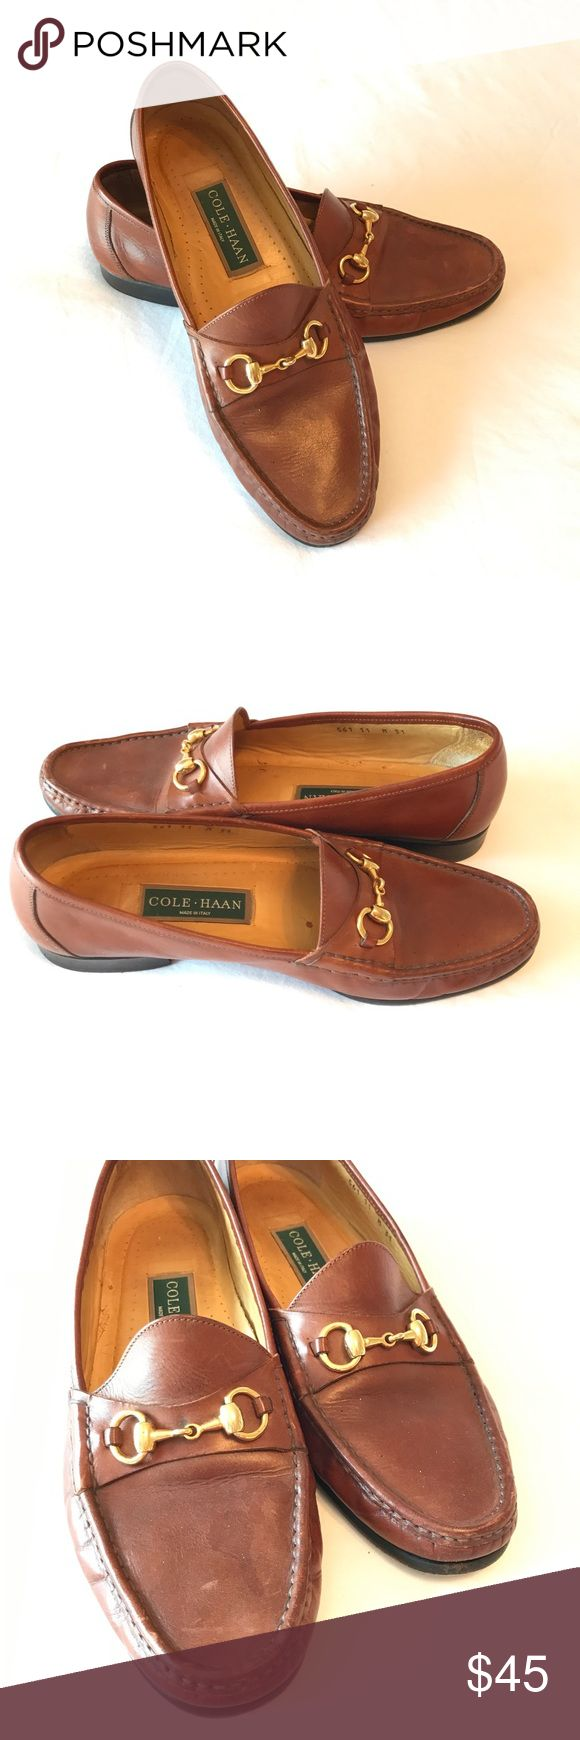 COLE HAAN Leather Snaffle Bit Loafers The one thing all men can agree on - you just can't go wrong with Cole Haan shoes! As comfortable as they are stylish, these shoes are in exceptional condition and ready to be the finishing touch for your favorite business attire. Cole Haan Shoes Loafers & Slip-Ons